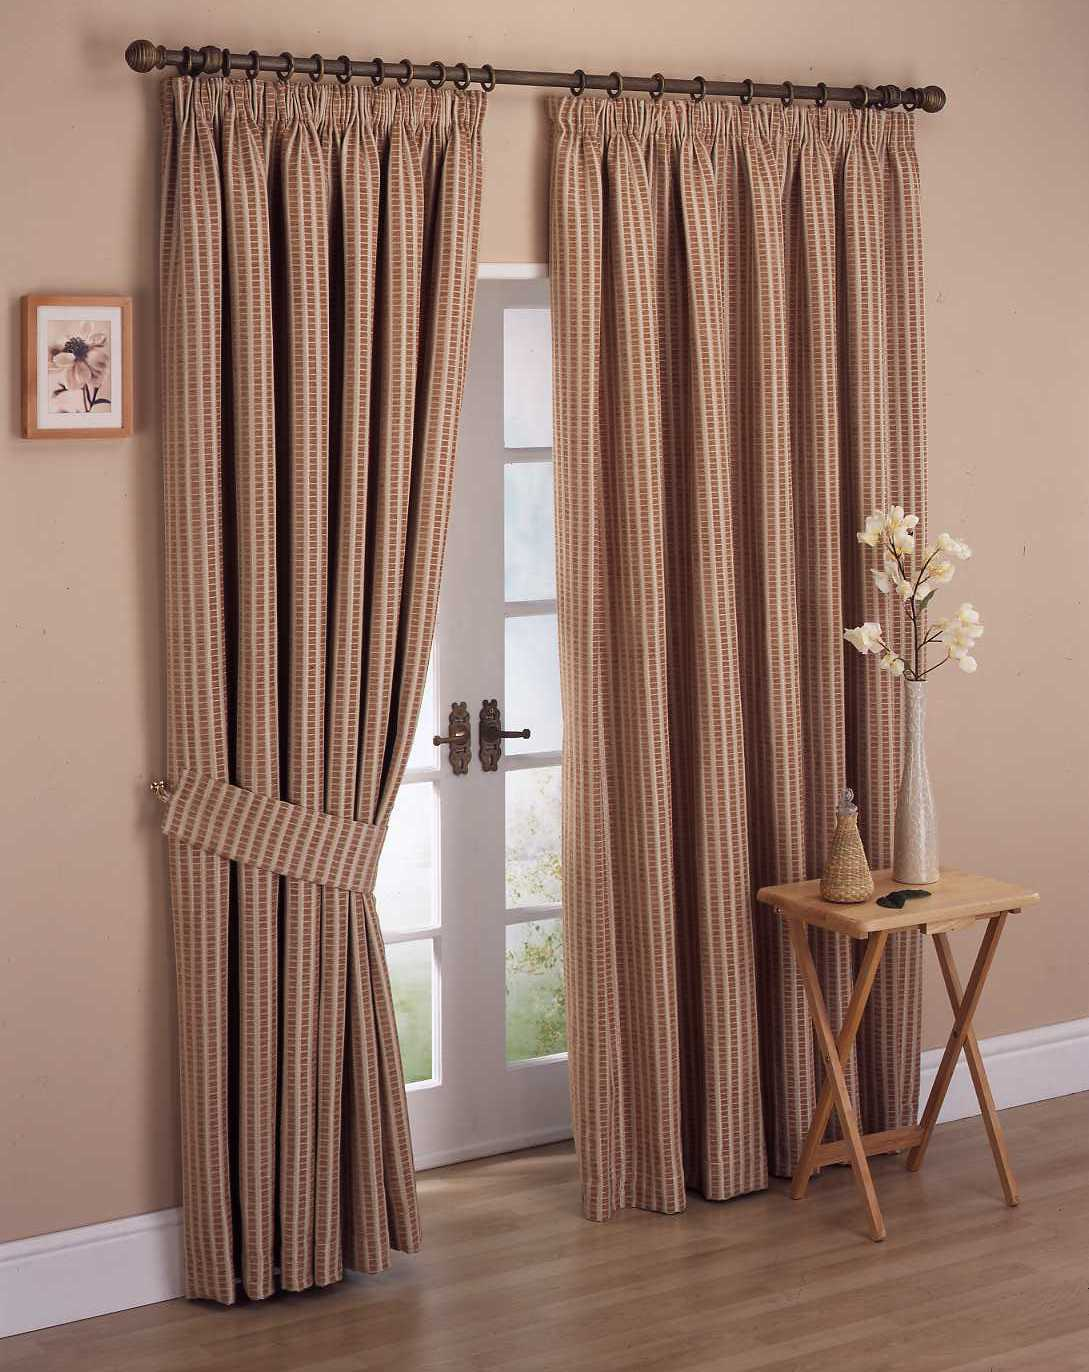 Top catalog of classic curtains designs 2013 room design for Curtains for the bedroom ideas